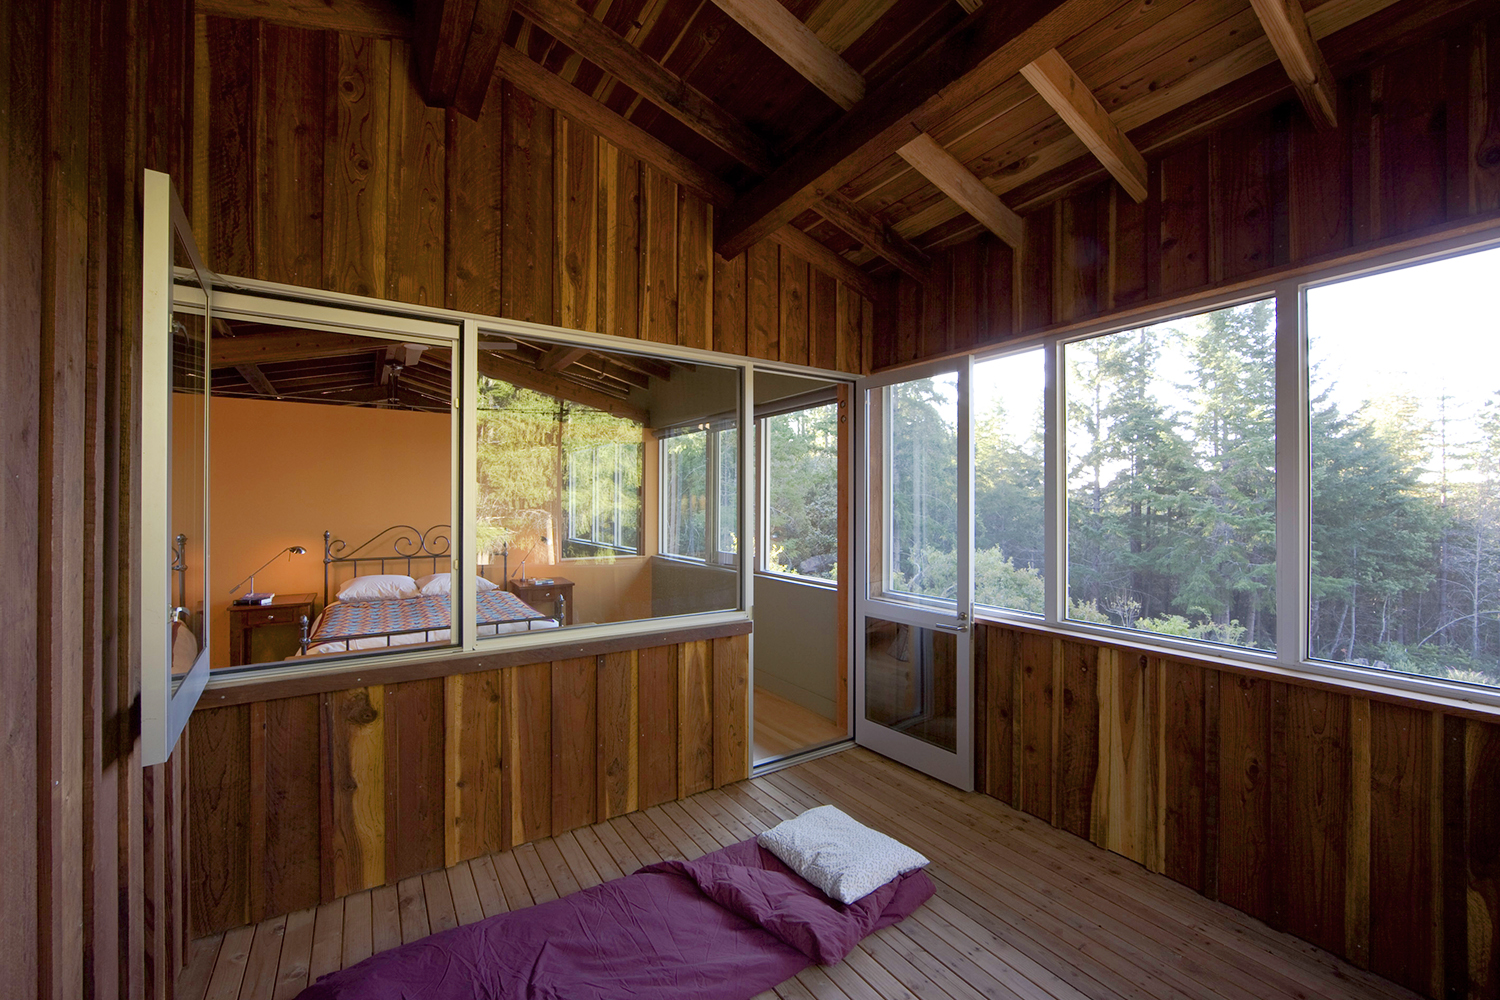 07_Projects_House for Two Artists.jpg